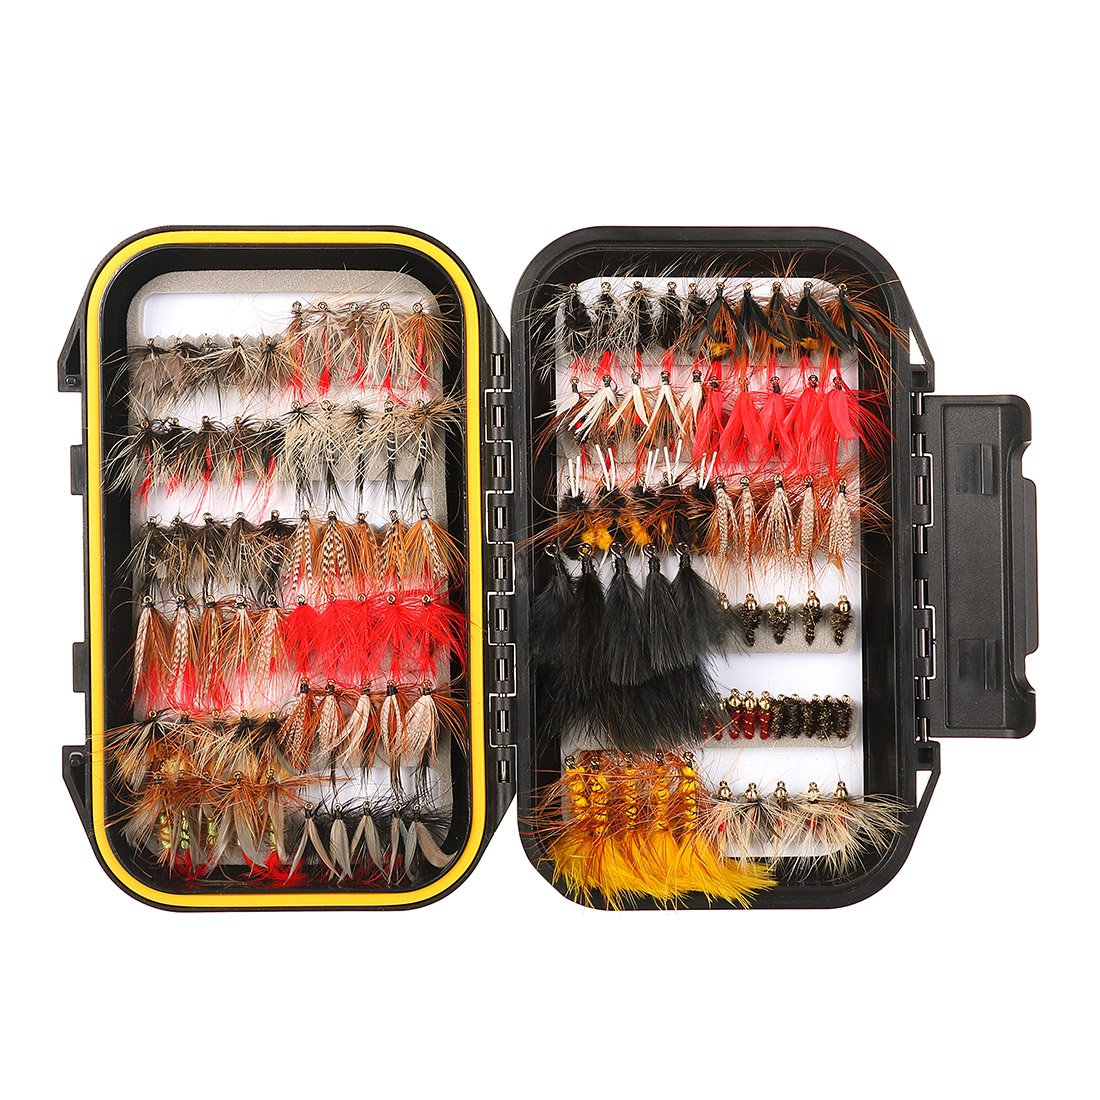 FISHINGSIR 120PCS Fly Fishing Flies Set Assorted Dry/Wet Flies Fly Fishing Lures with Waterproof Fly Box by FISHINGSIR